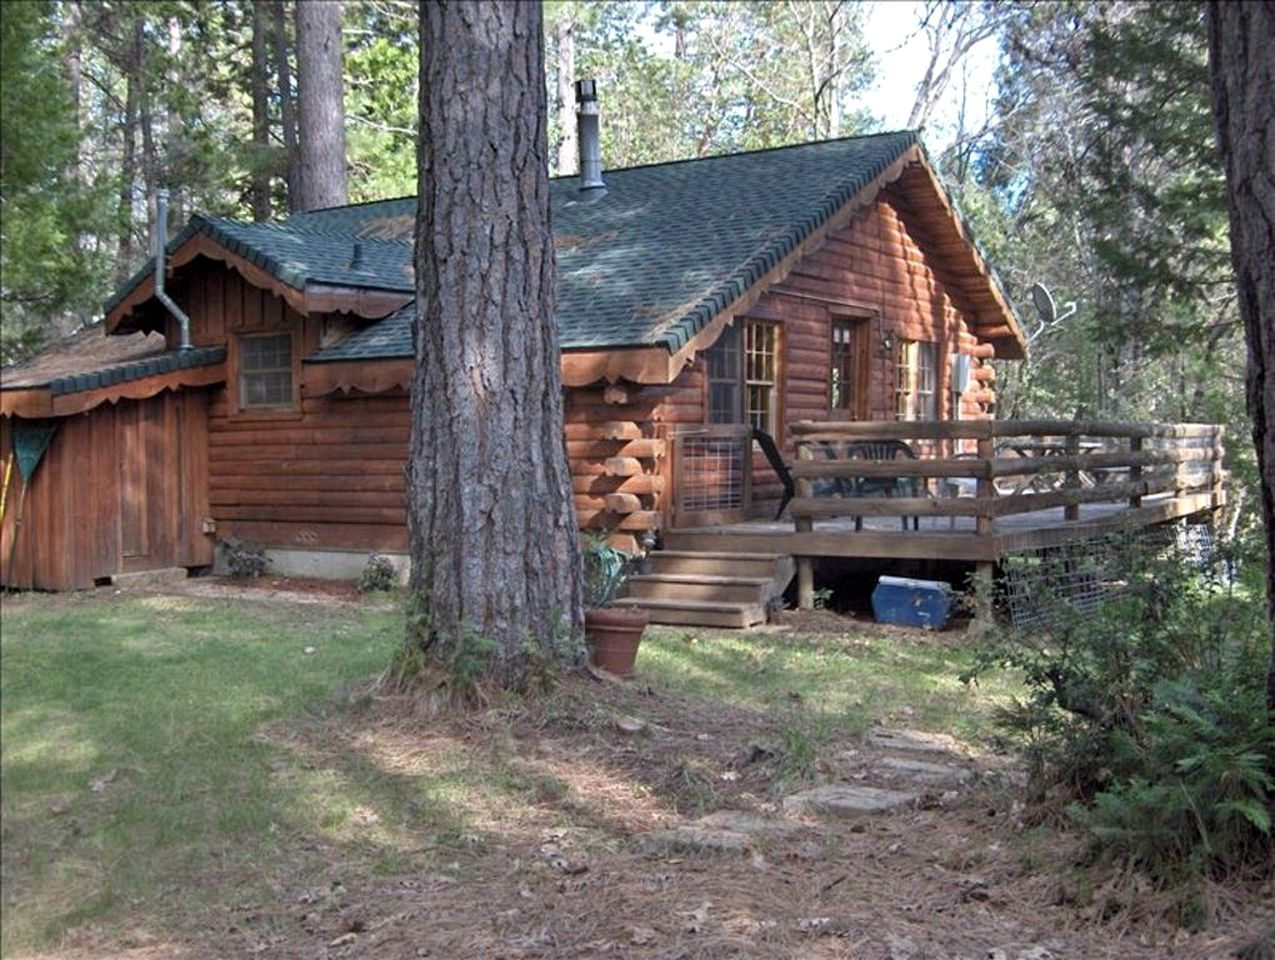 Yuba river camping cabins (Nevada City, California, United States)